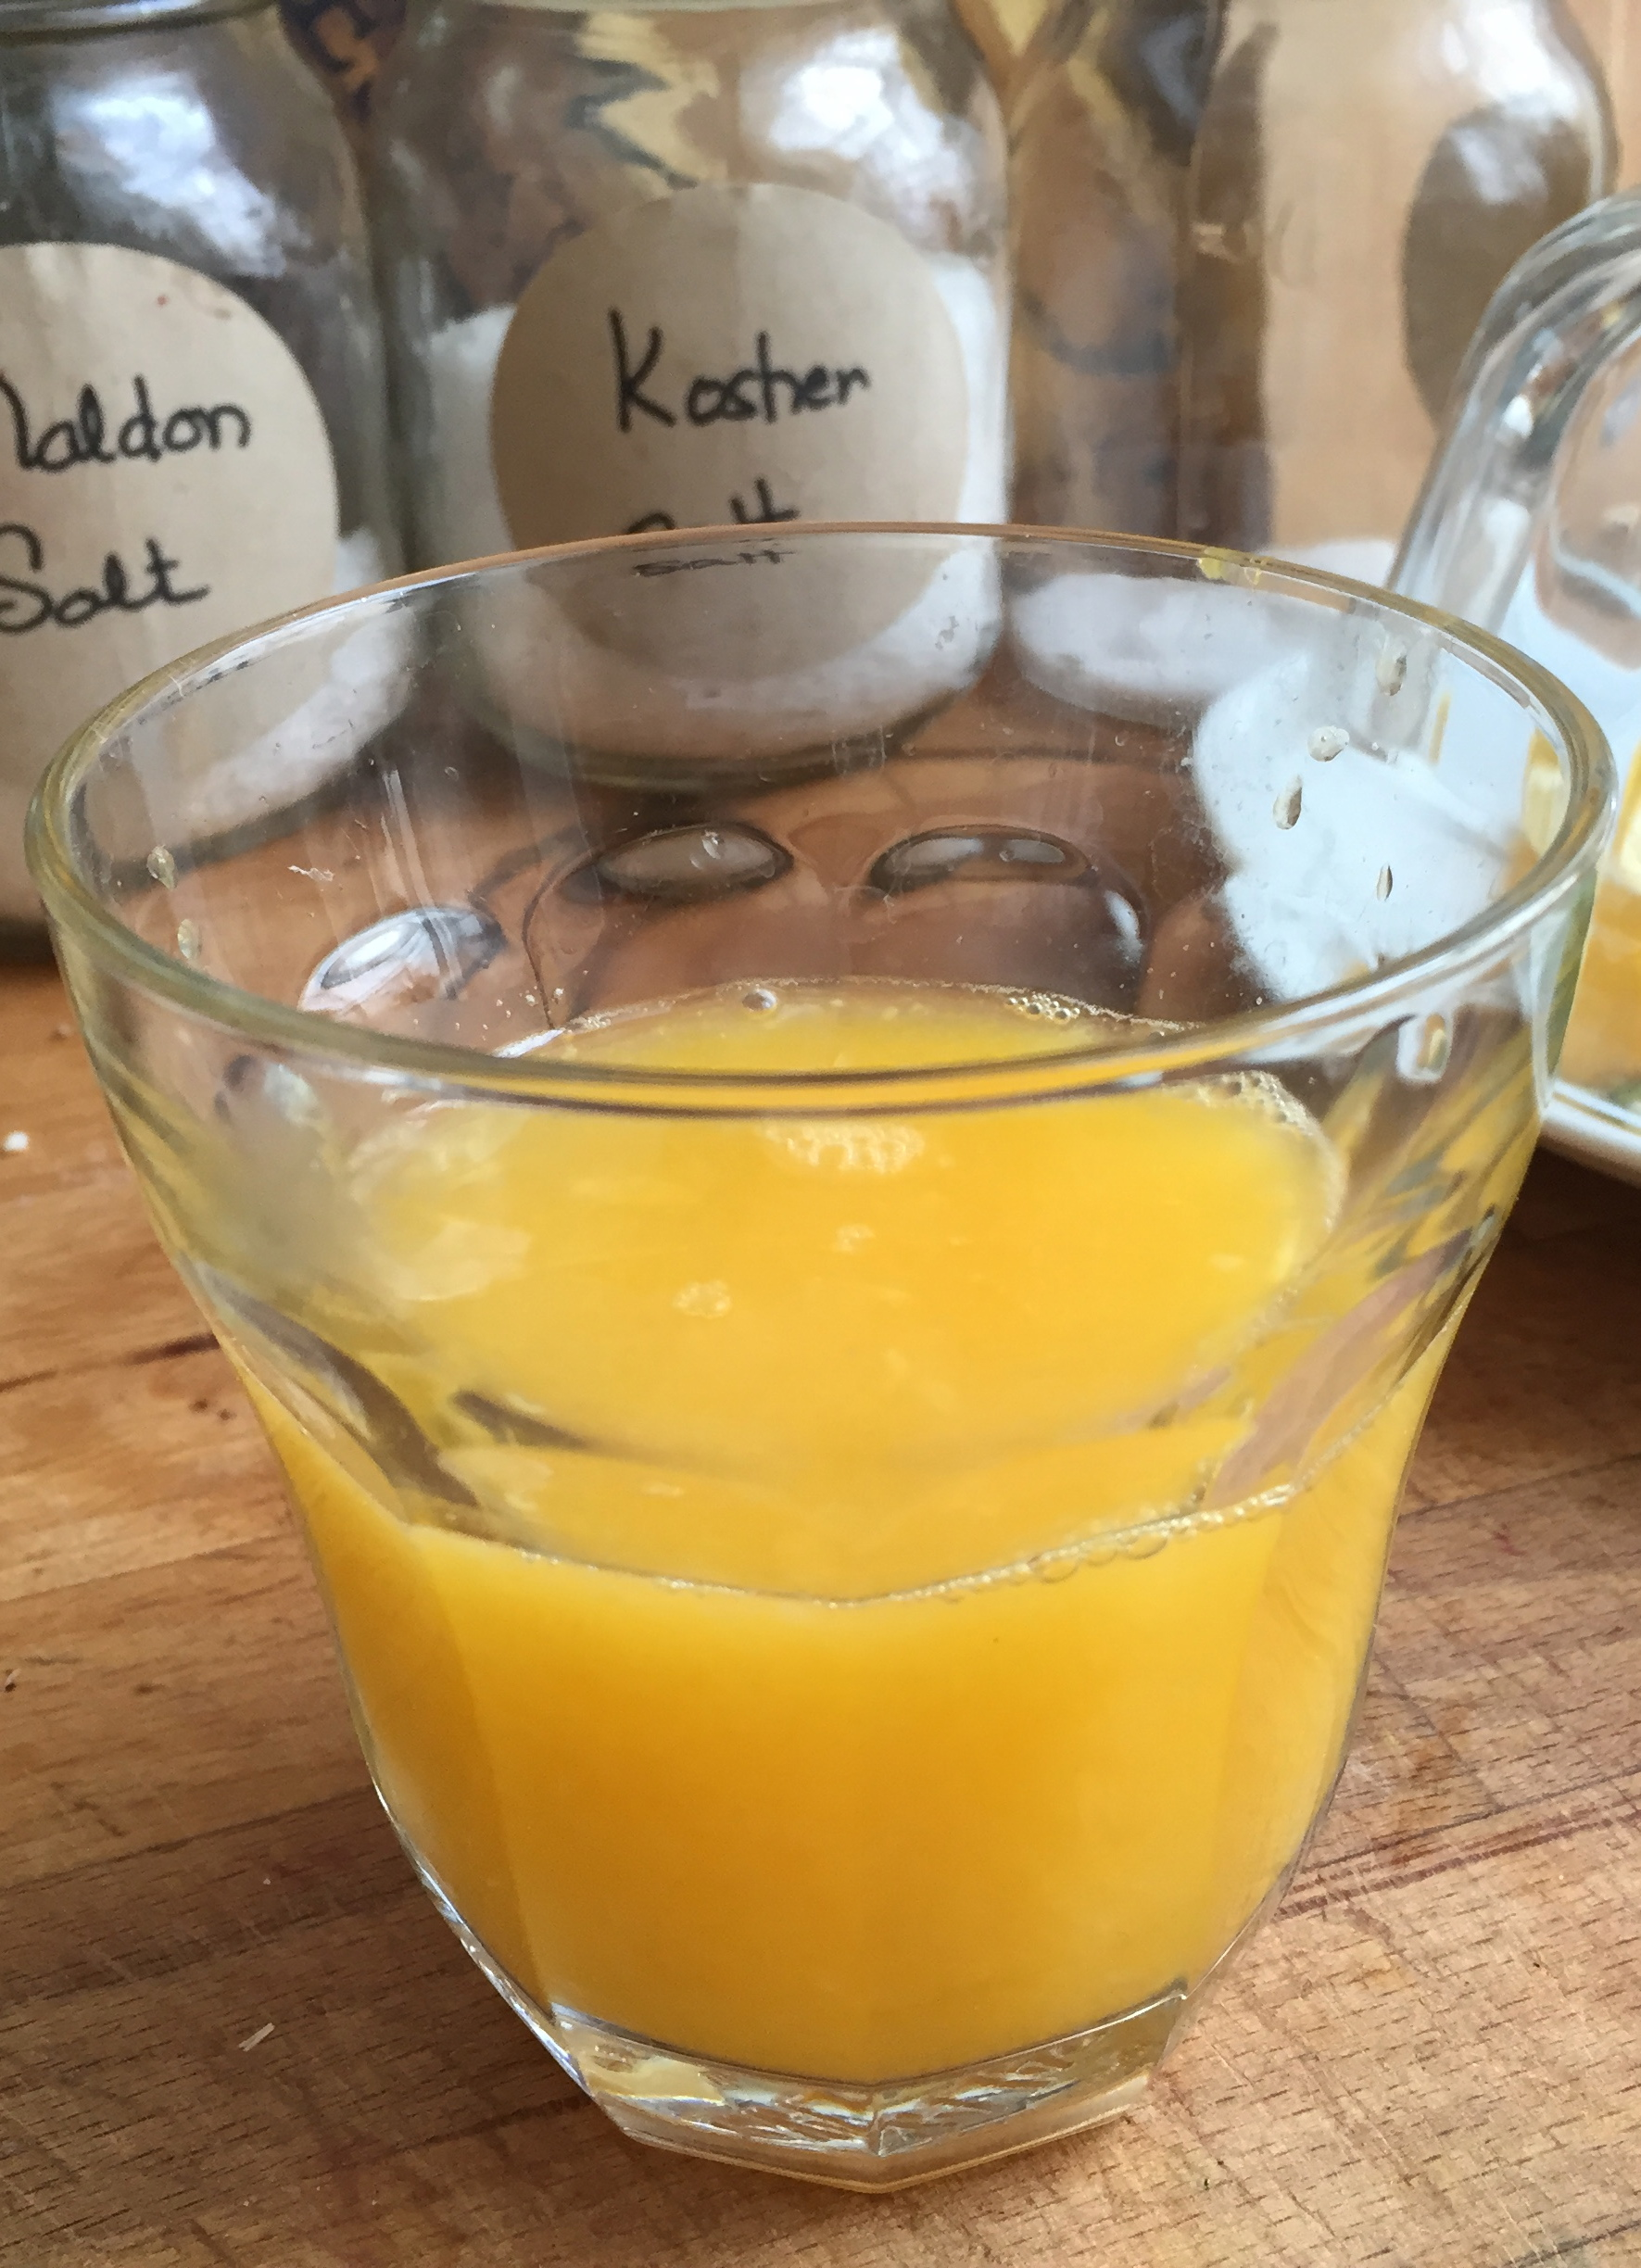 Is this enough orange juice? Usually I have a full cup, but the oranges I squeezed only yielded this much. I look at it for a long time and decide it is just exactly the right amount. Peaceful.